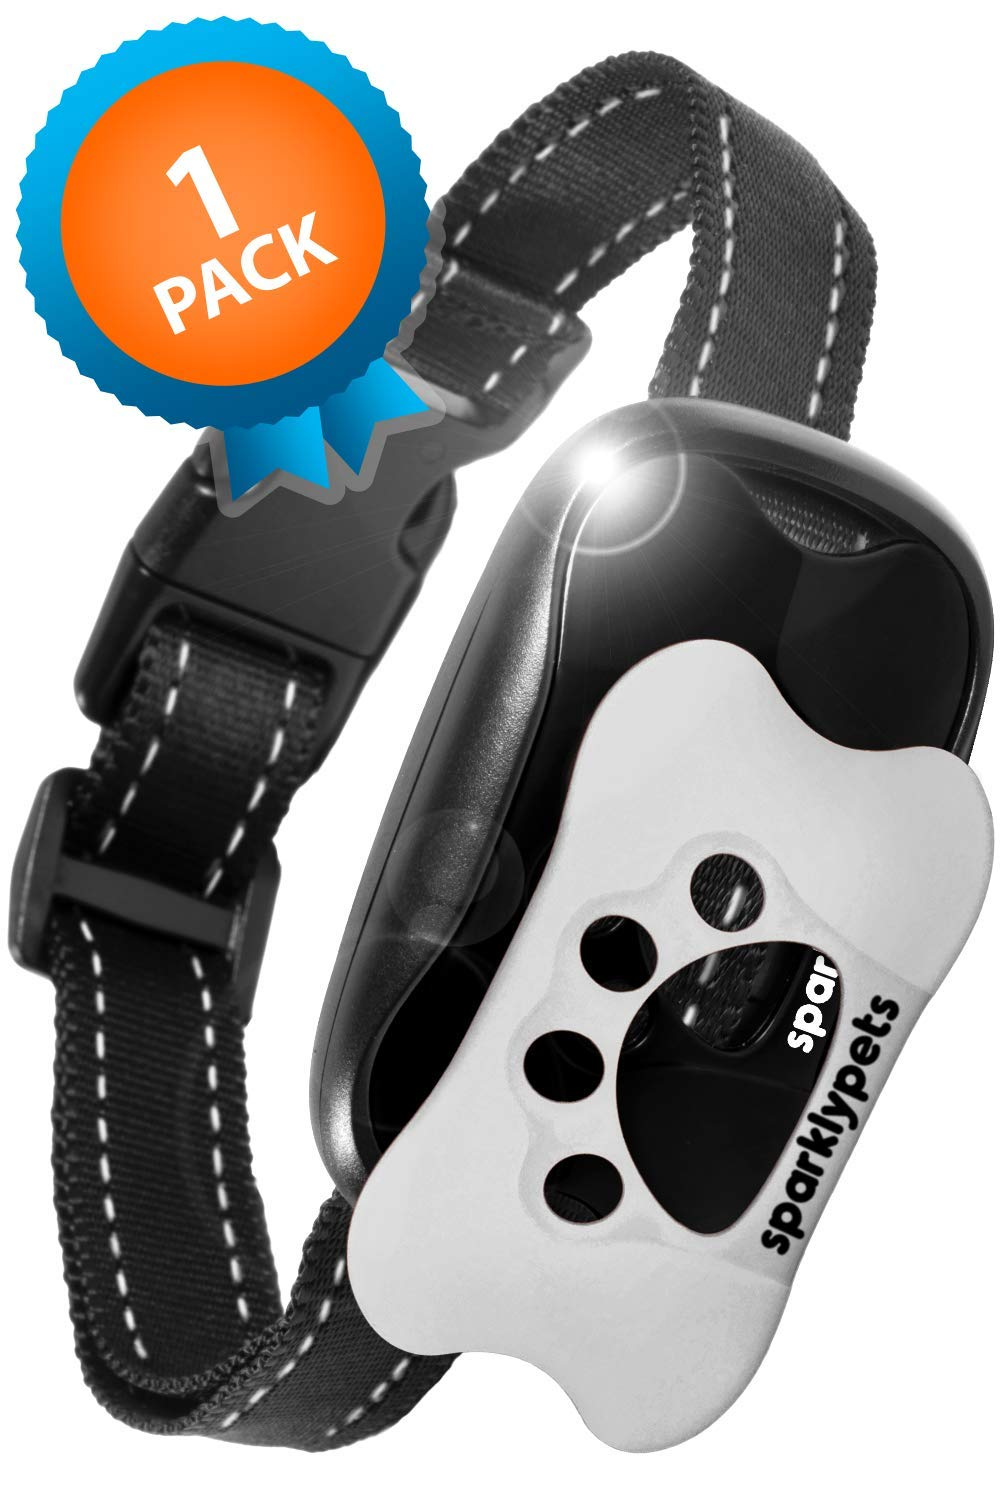 SparklyPets Humane Dog Bark Collar | Anti Barking Training Collar | Vibrating, No Shock Stop Barking for Small Medium Large Dogs | (White and Black 1 Pack) (White and Black 1 Pack) by SparklyPets